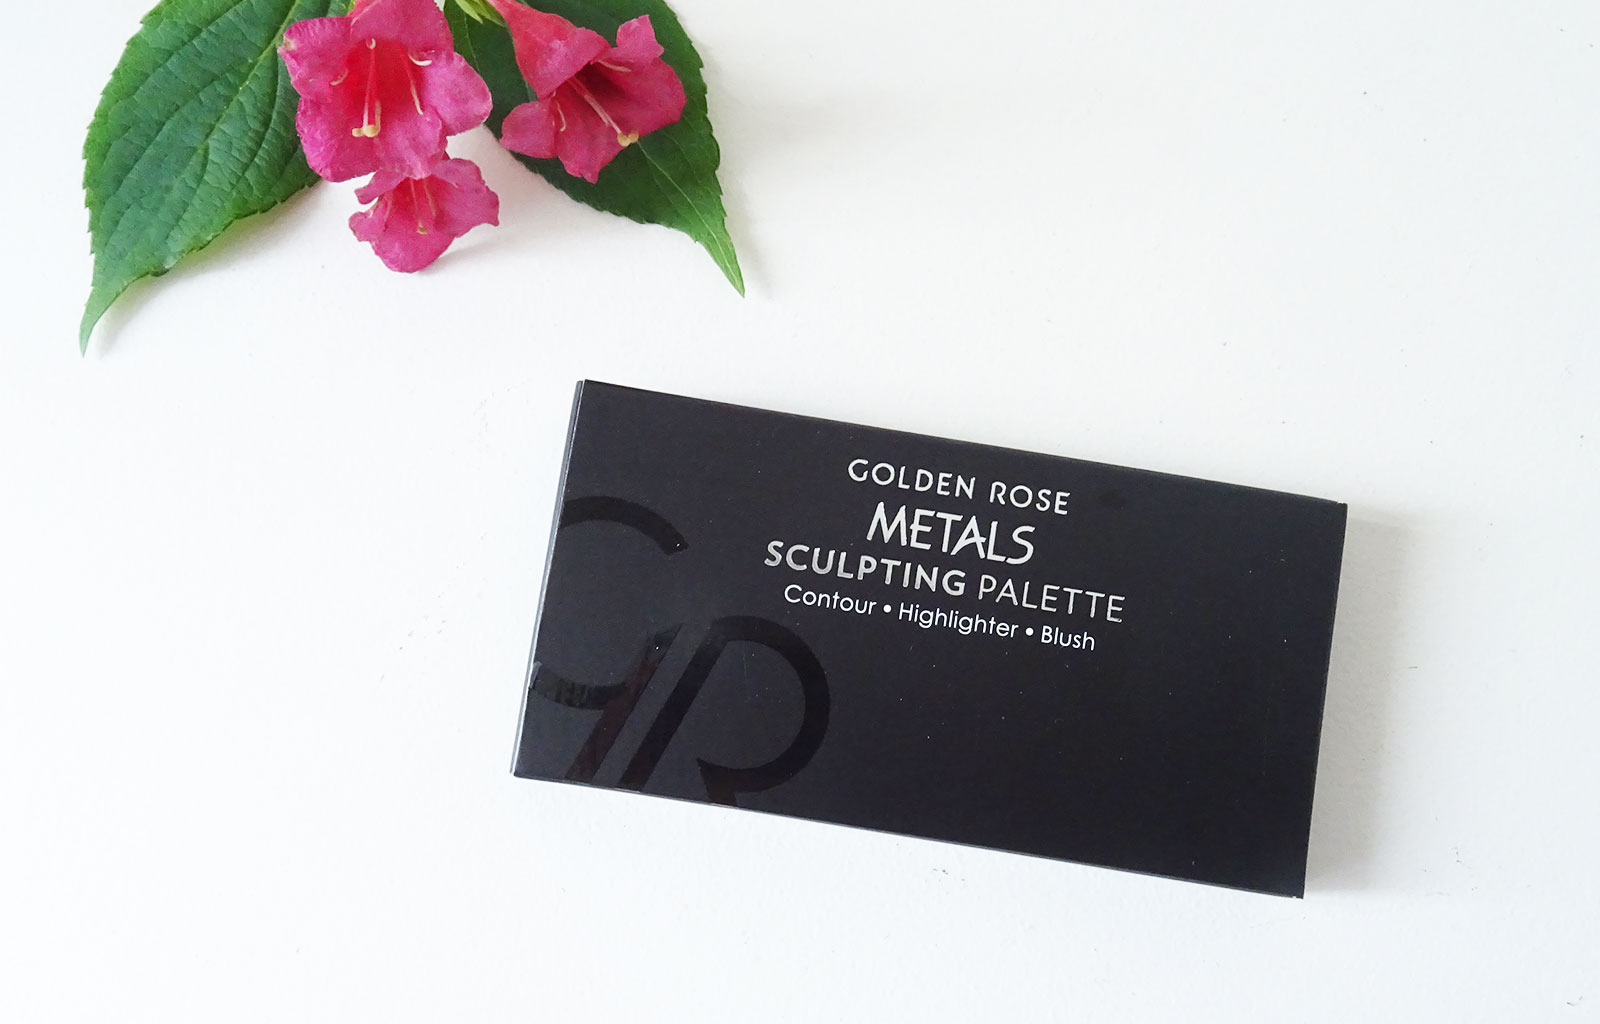 Metals Sculpting Palette Cookie's Make Up Golden Rose